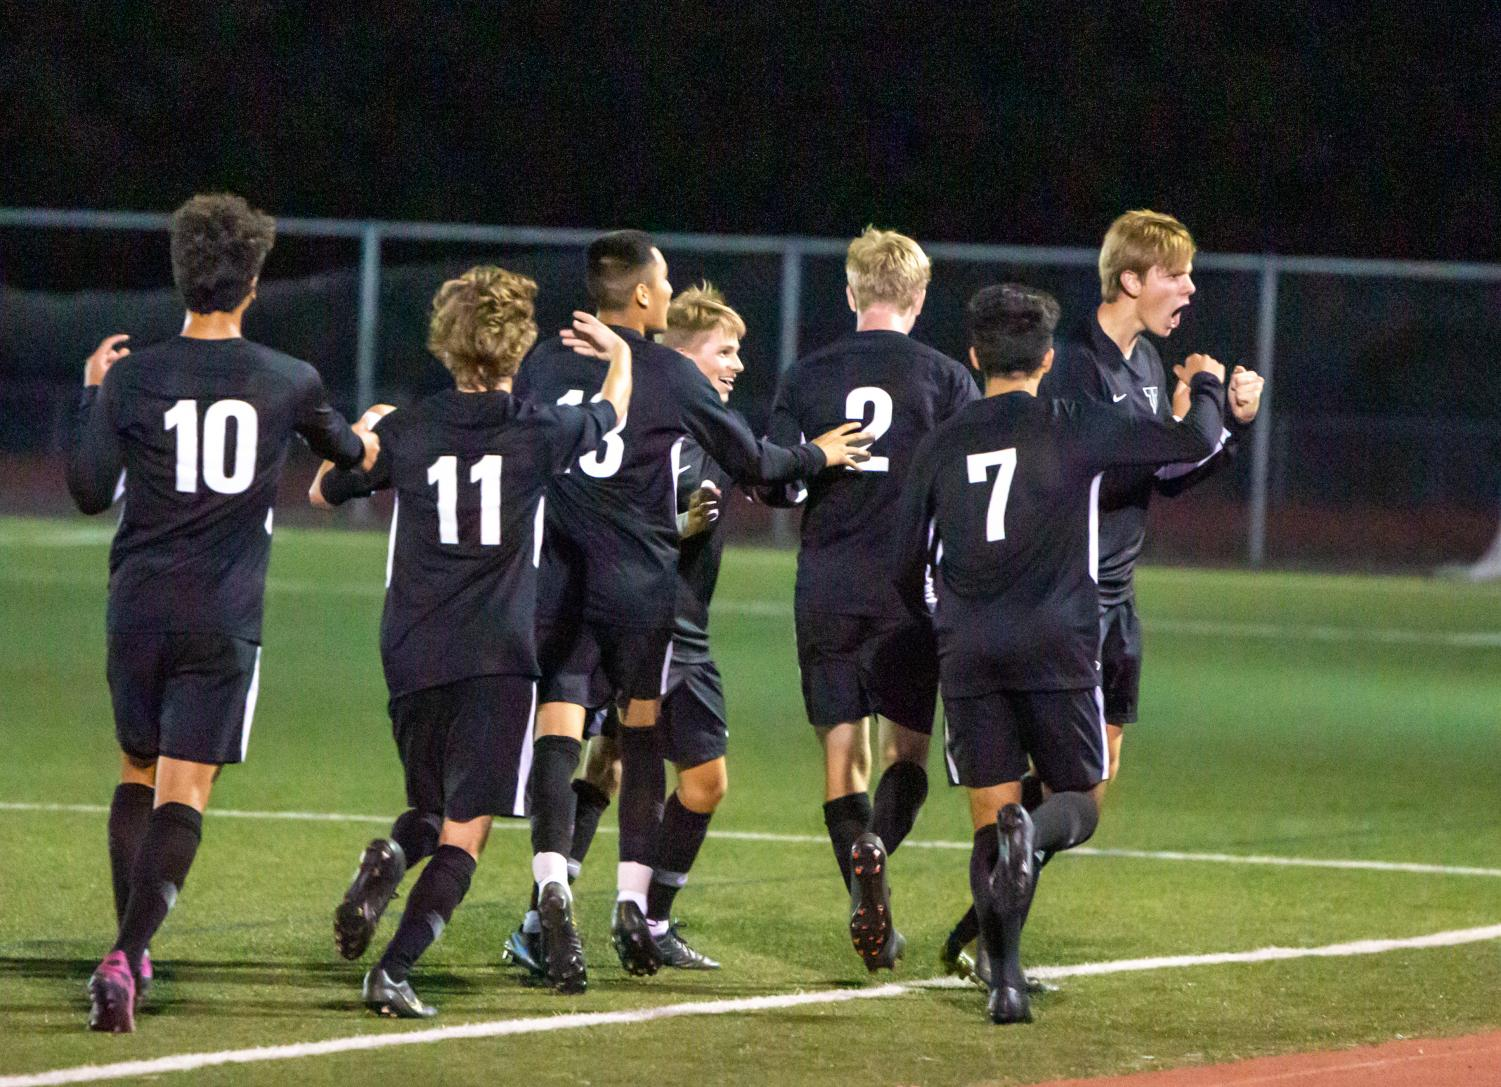 Teammates celebrate with Jared Debban after he scores the game's only goal in the boys varsity soccer defeat of Tualatin on Sept. 12.